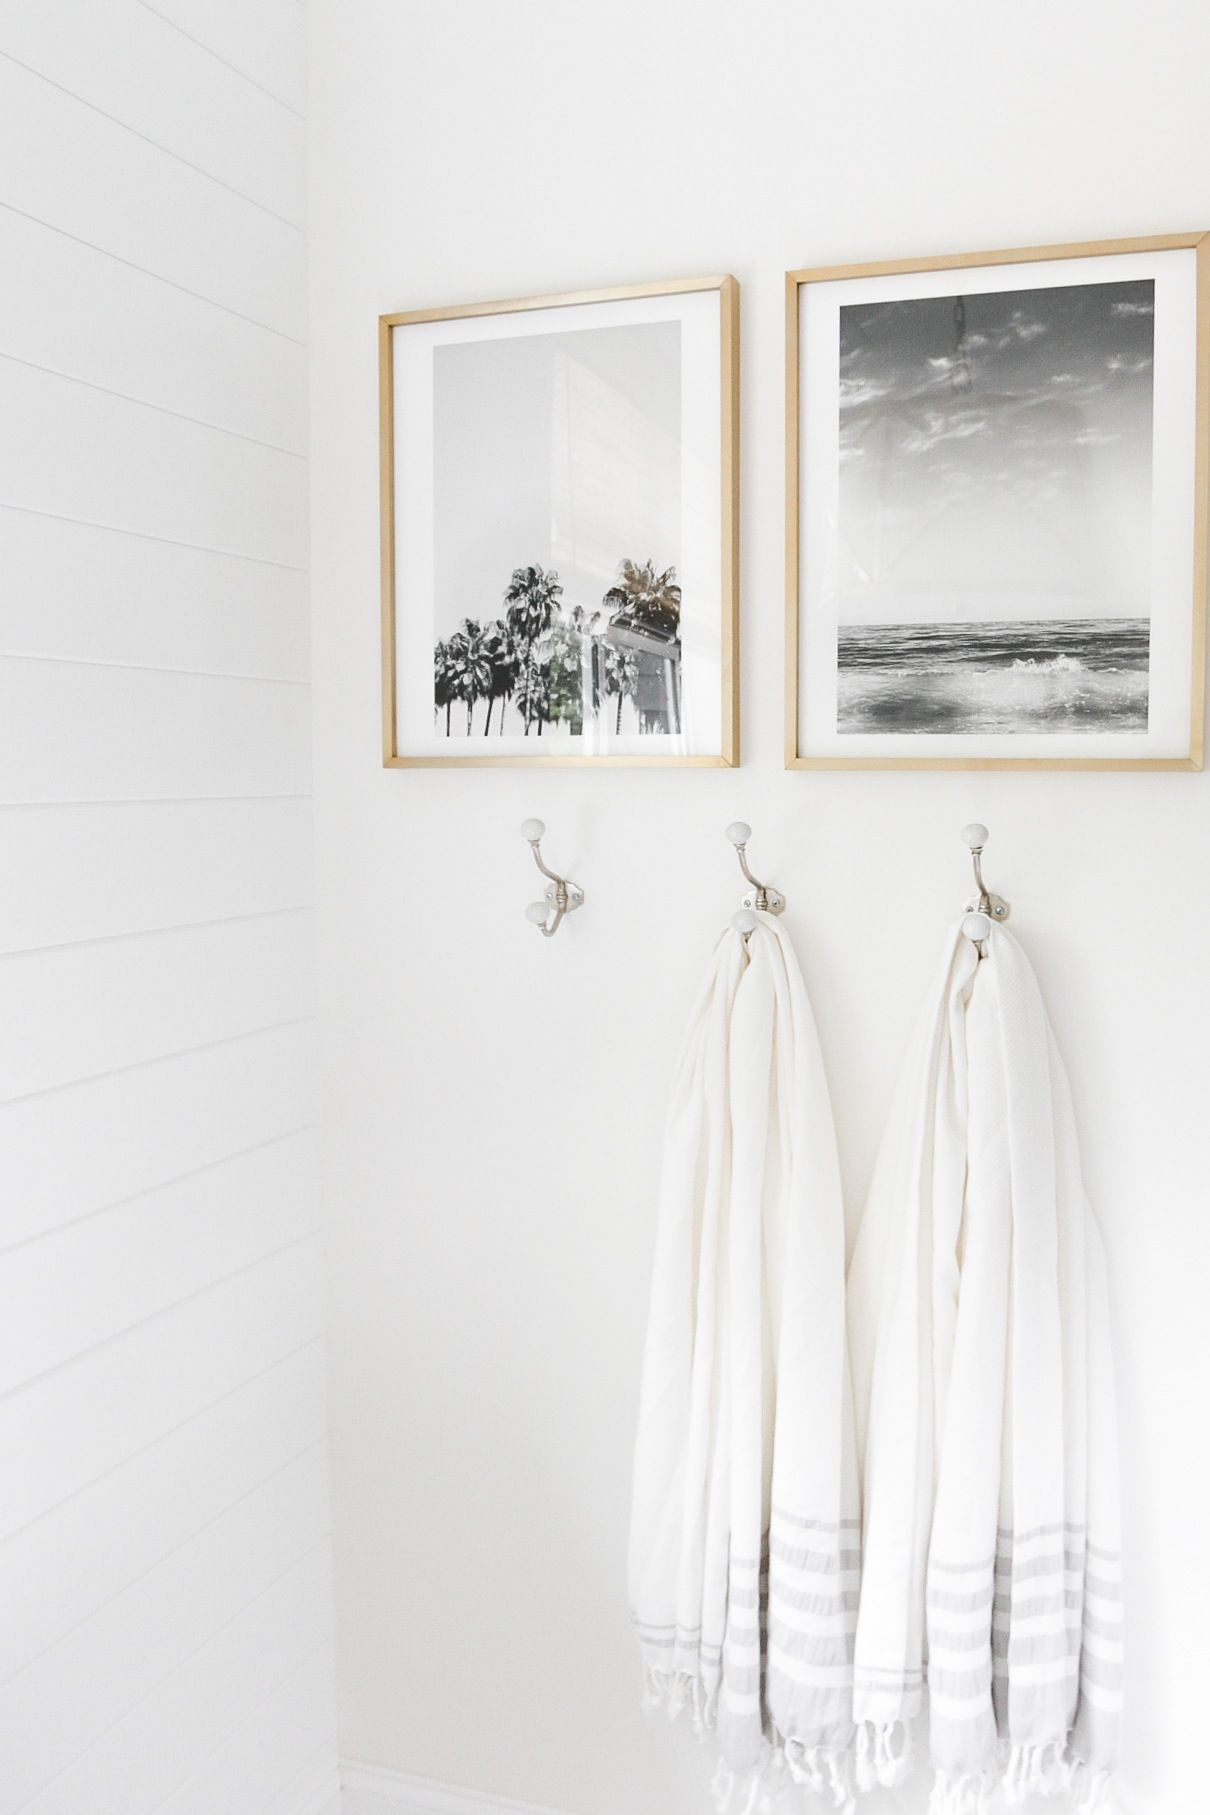 15 Mindful Ways to Make Your Home More Zen | Towels, Bath and Apartments